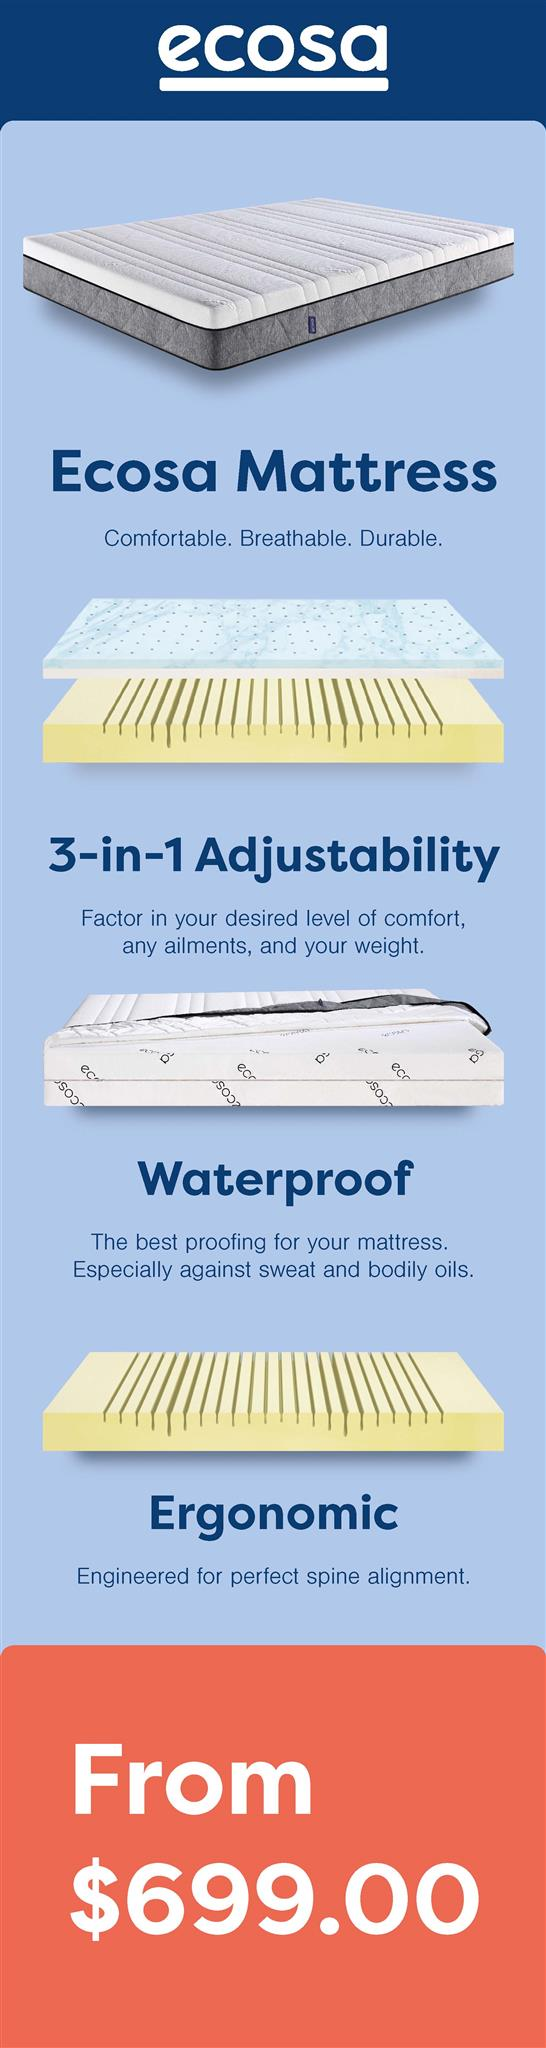 ecosa mattress review australia